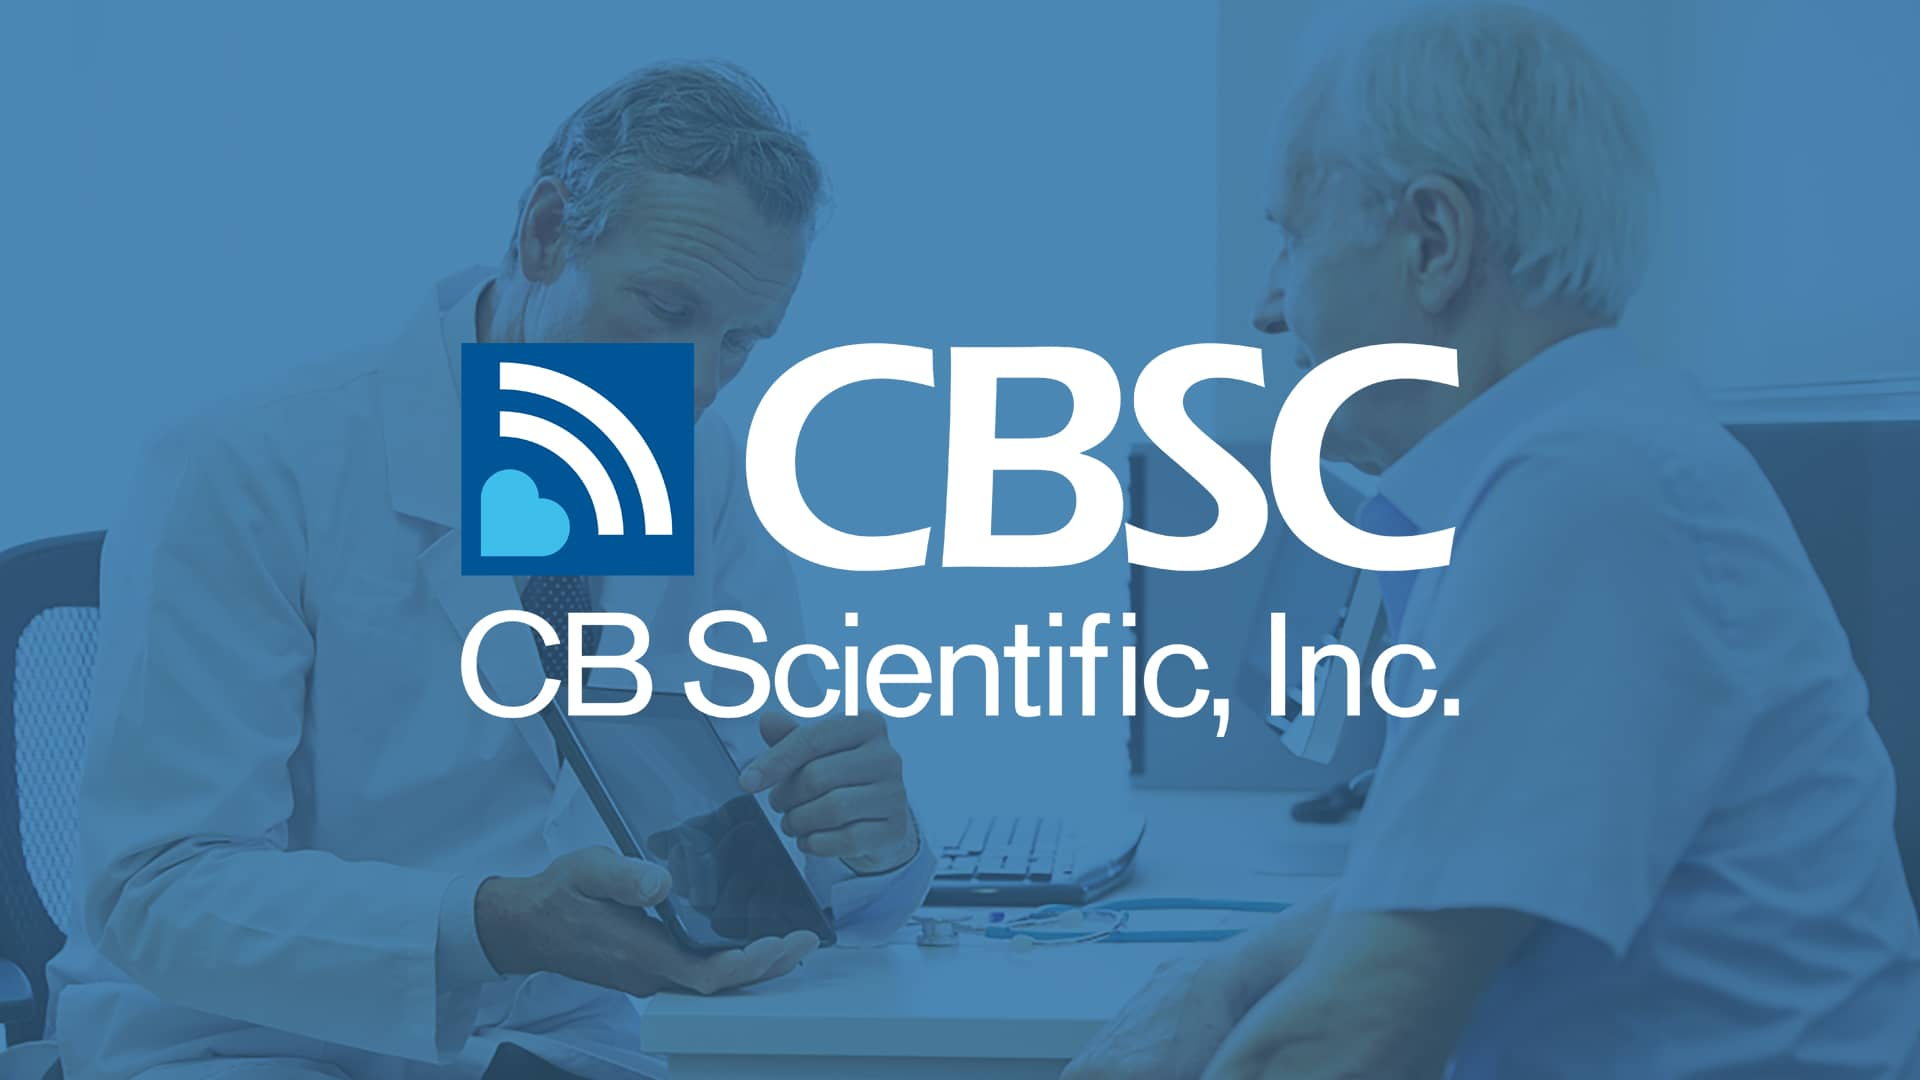 CB Scientific Inc. Stock Symbol CBSC issues a Shareholder Update